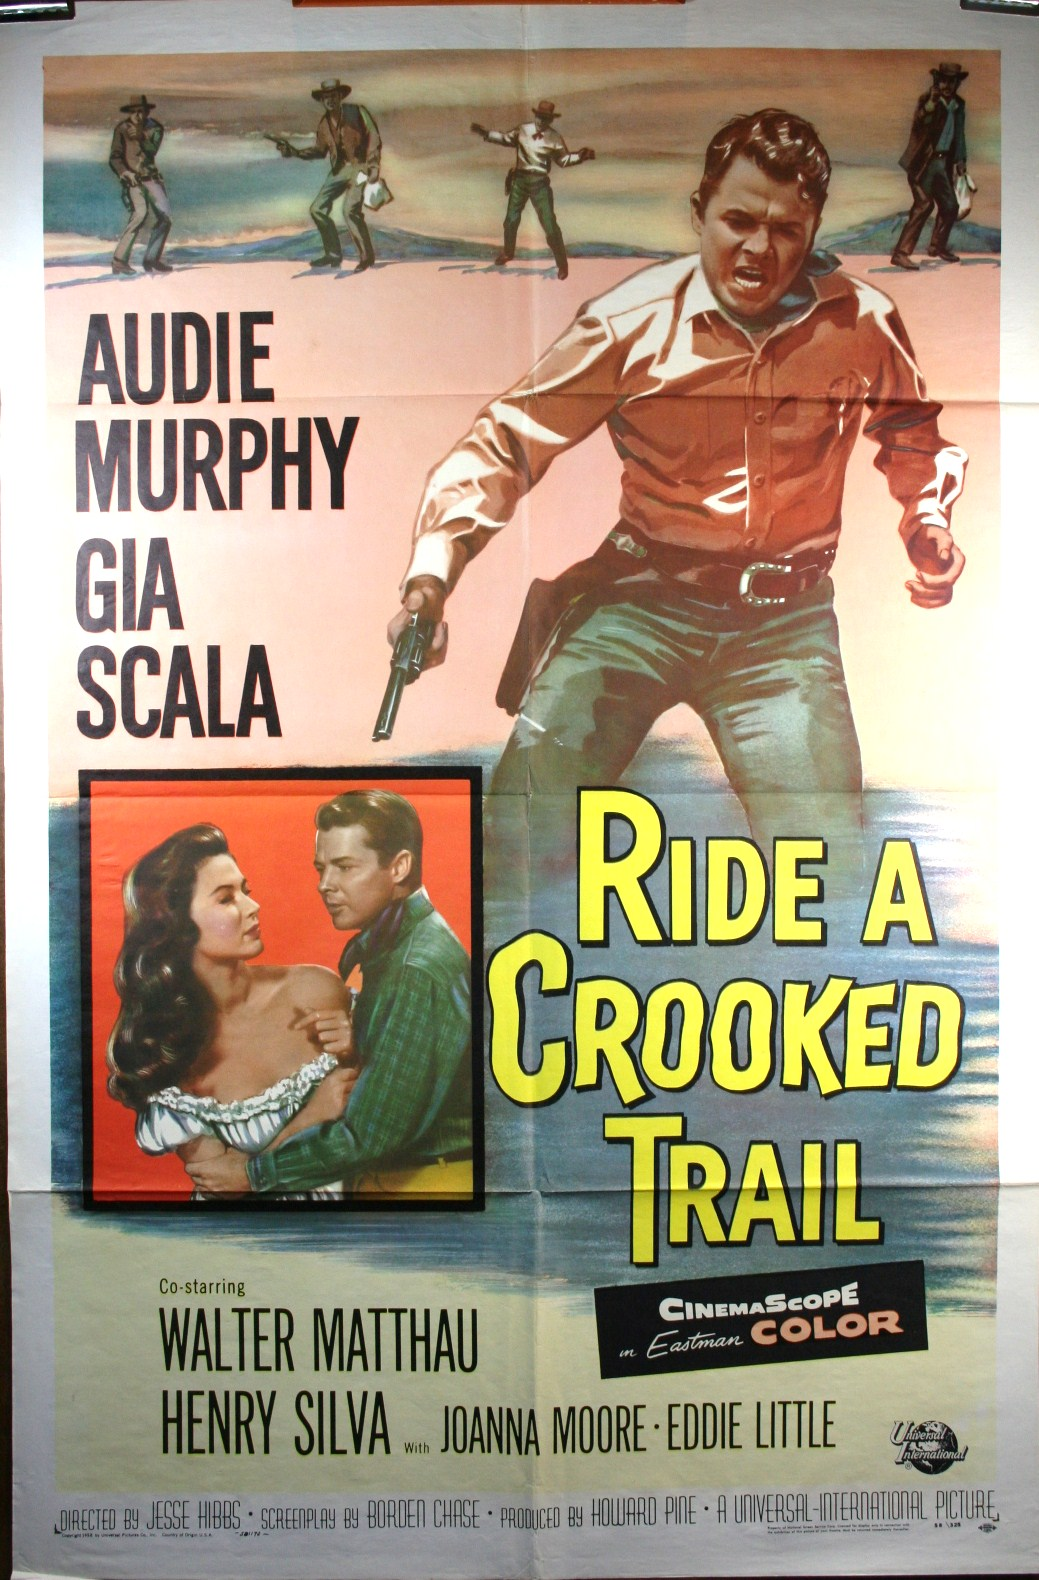 Ride A Crooked Trail Original Audie Murphy Movie Poster Original Vintage Movie Posters